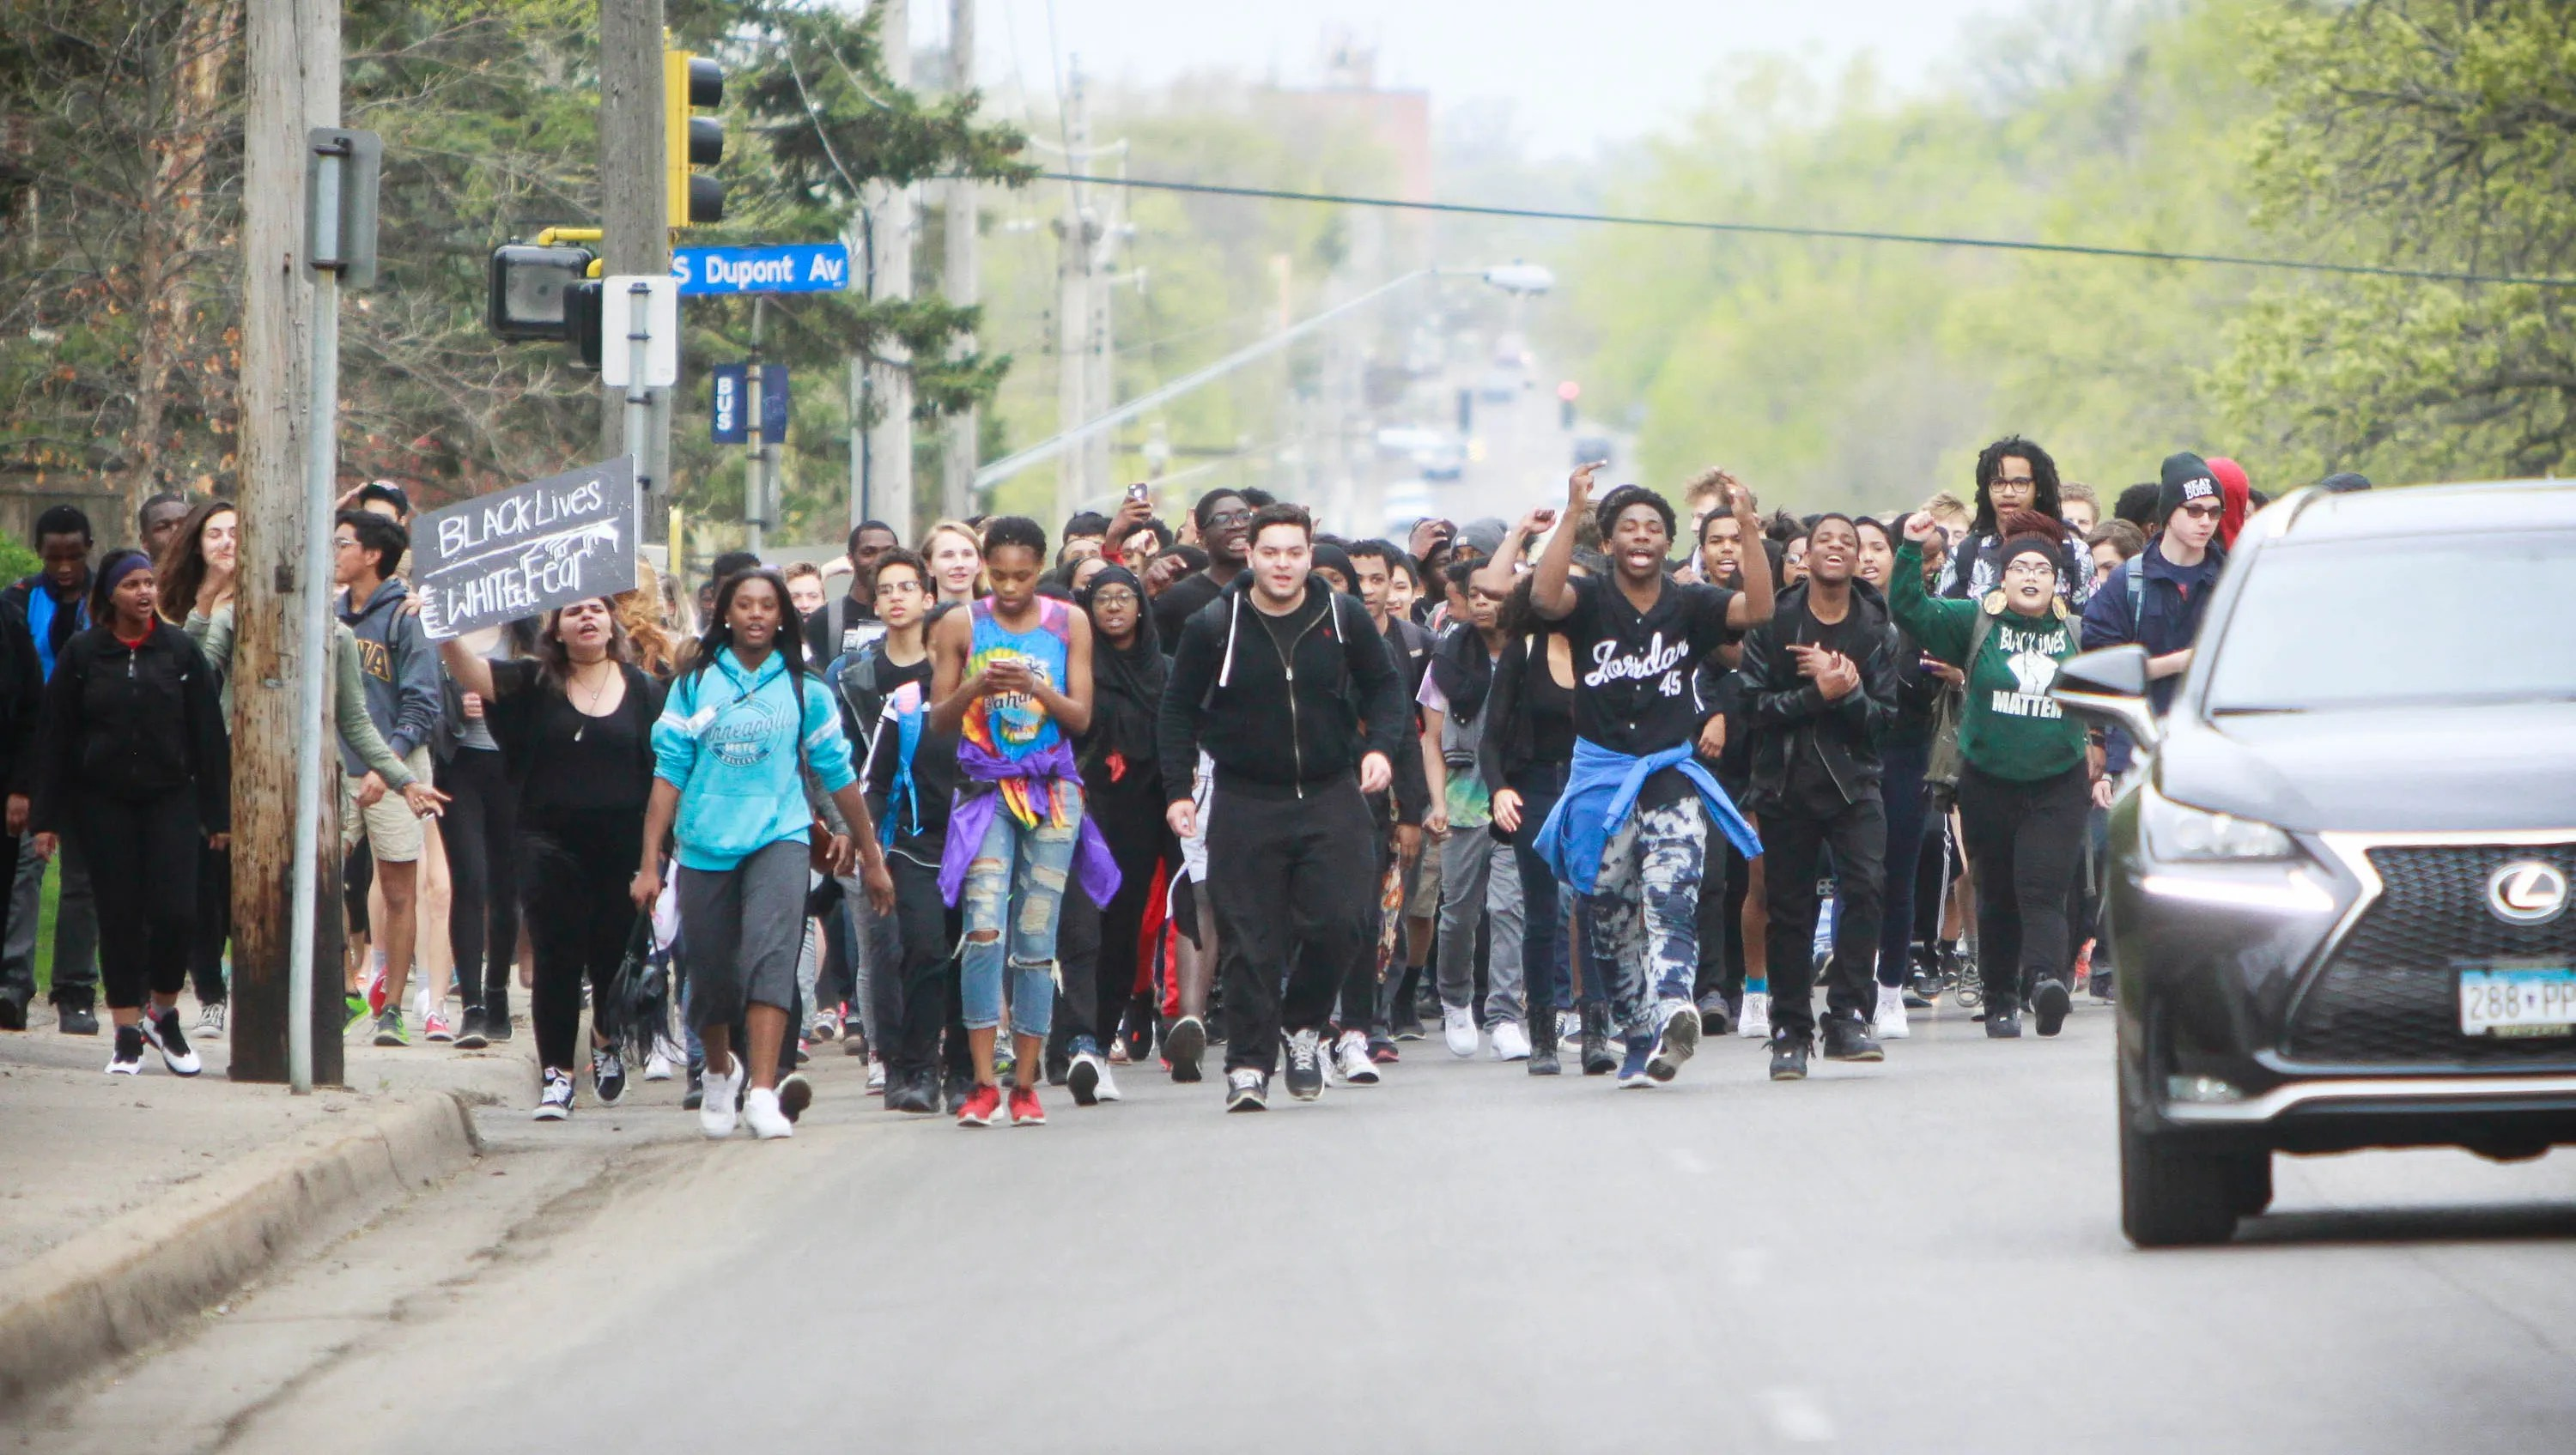 Students from Southwest High School march to join with other students who walked out of school to participate in a Black Lives Matter rally at Martin Luther King Jr. Park in Minneapolis on Friday, May 1, 2015.